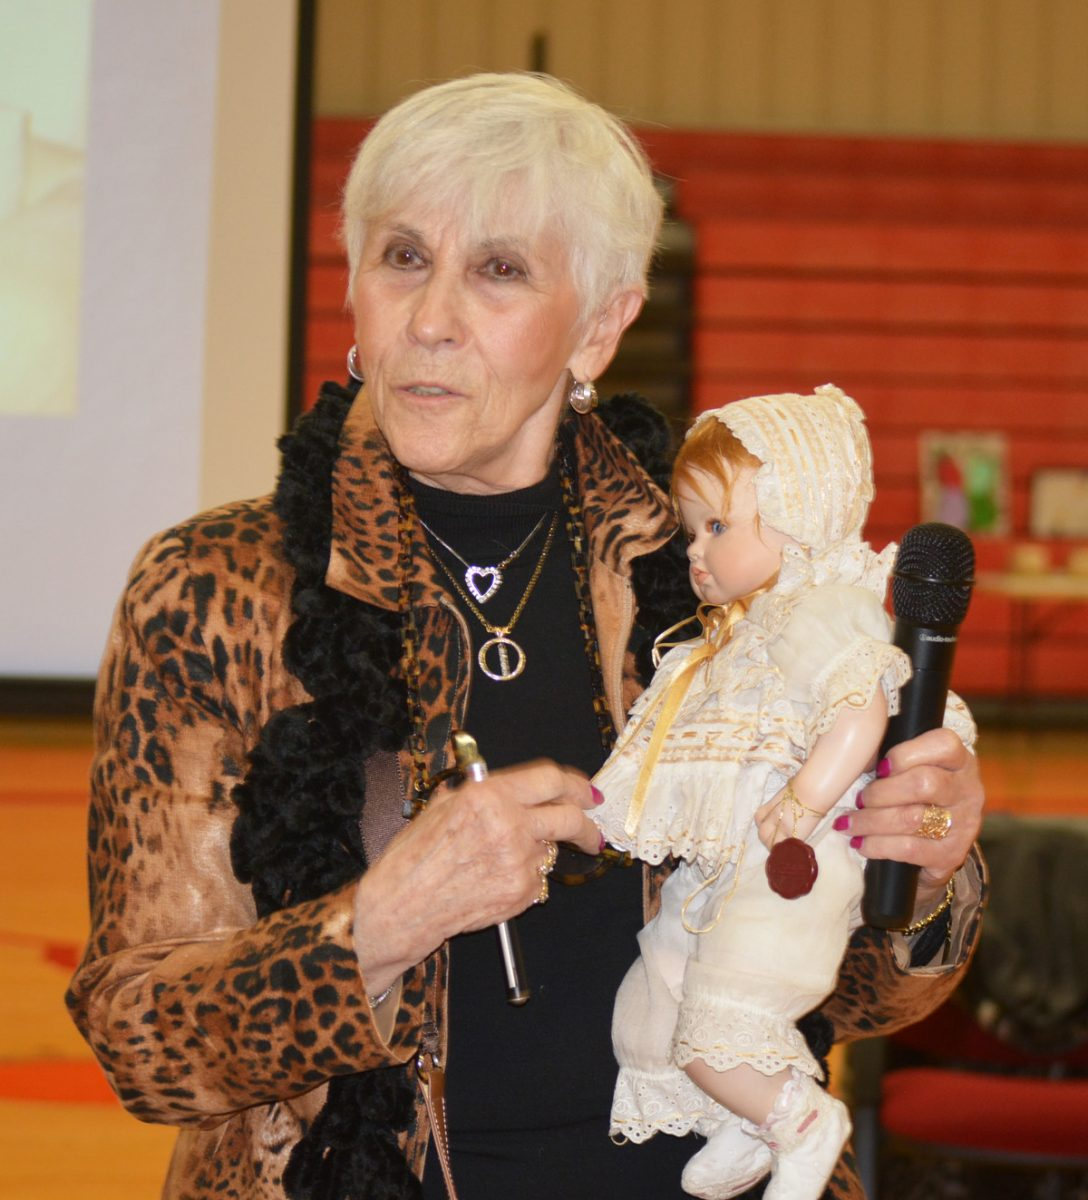 Rachel Goldman Miller, with her doll, as she spoke to Clark County R-1 students.